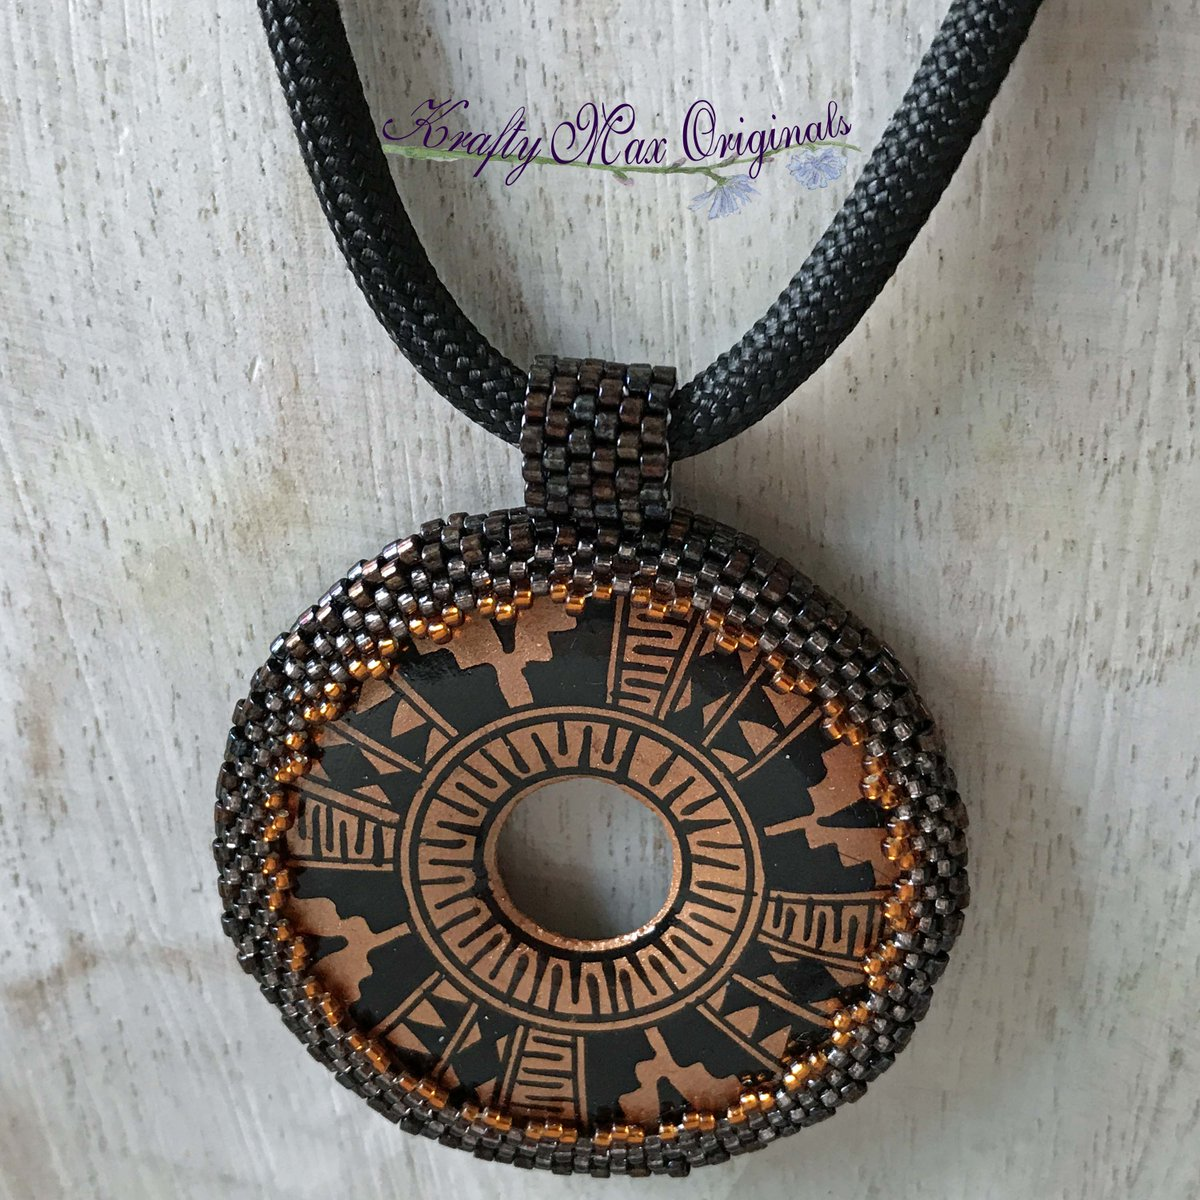 Bronze and Black Aztec Beadwoven Necklace (discounted from $57 down to $27)  #handmade #jewelry #buyhandmade #handmadelove #handcrafted #kraftymax #kmax #discount #sale #bargain #save #clearance